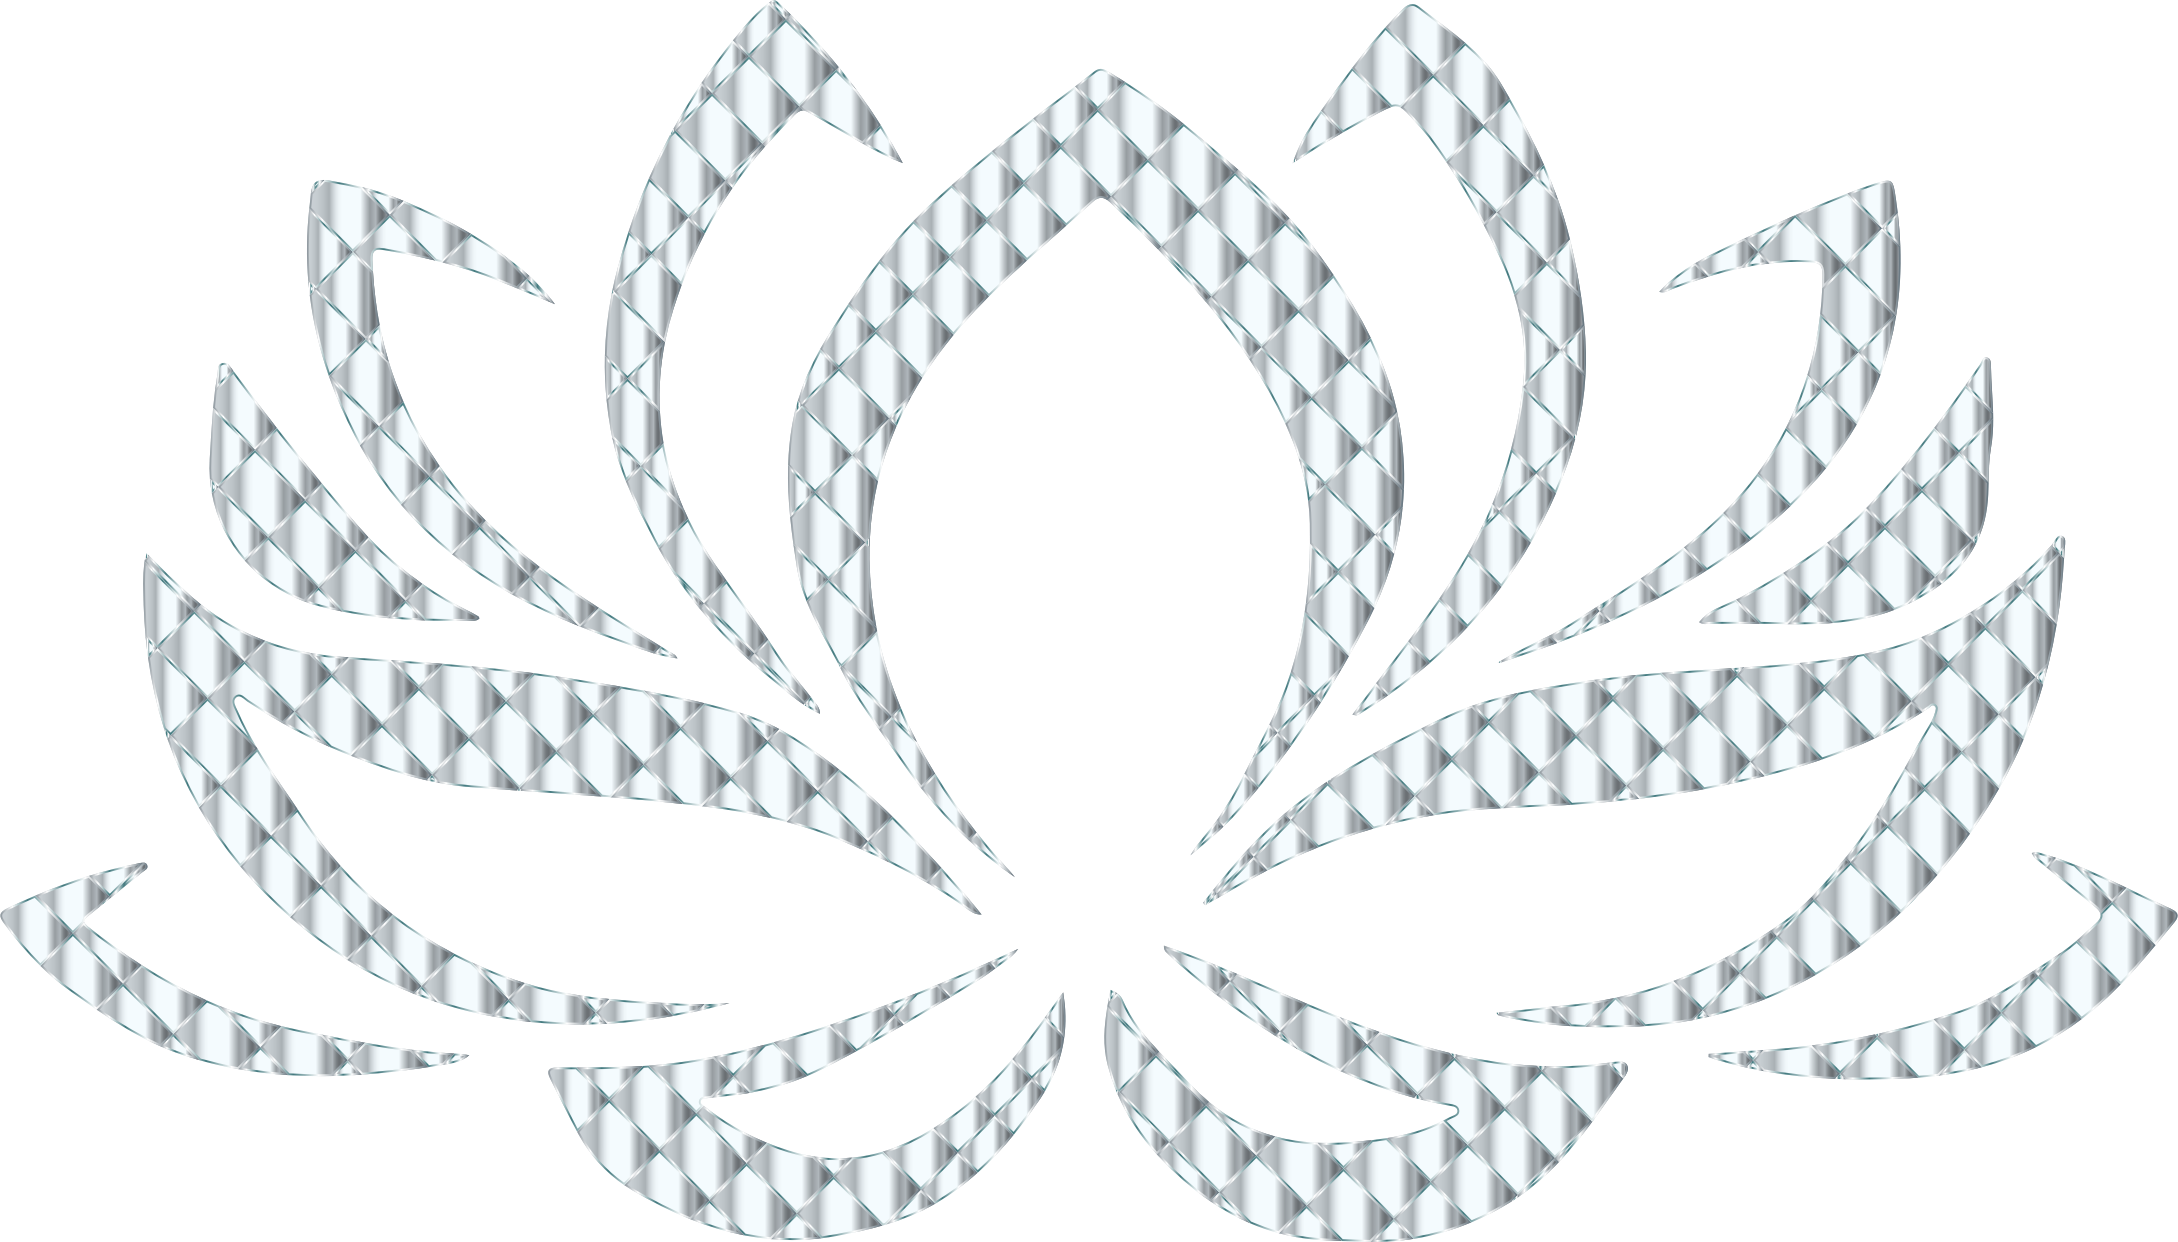 Clipart - Silver Lotus Flower No Background